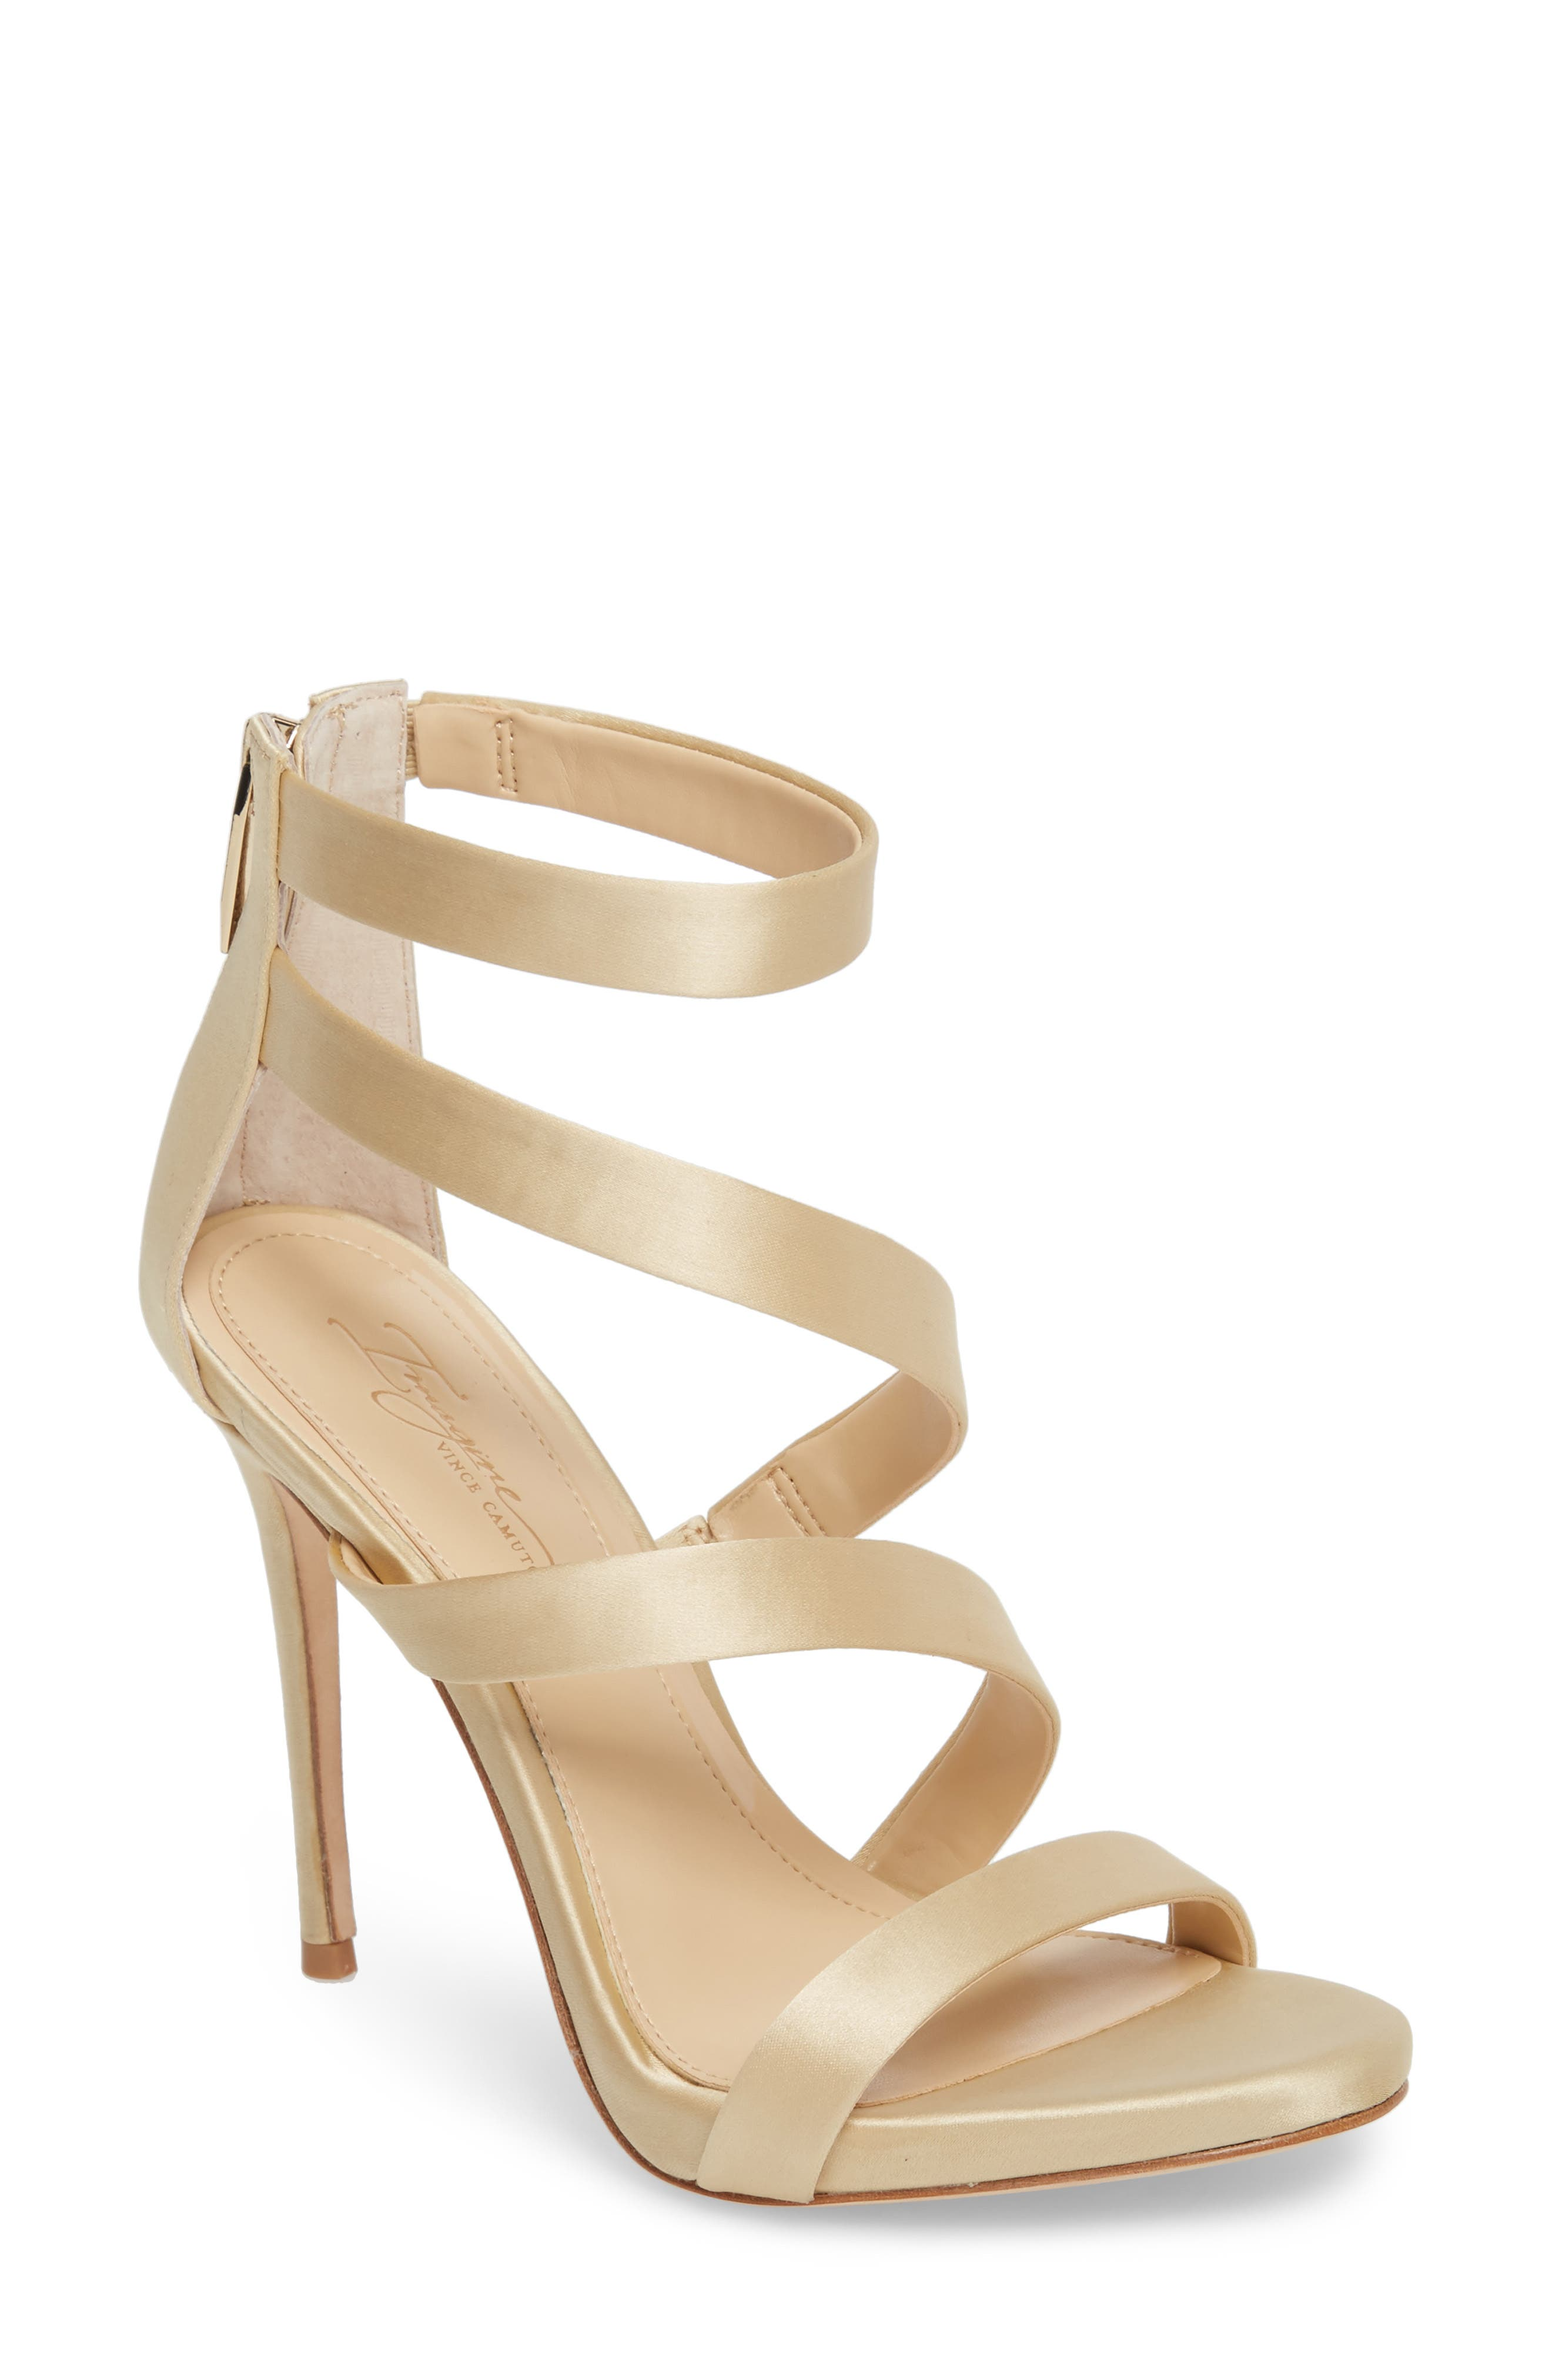 Main Image - Imagine Vince Camuto Dalles Tall Strappy Sandal (Women)